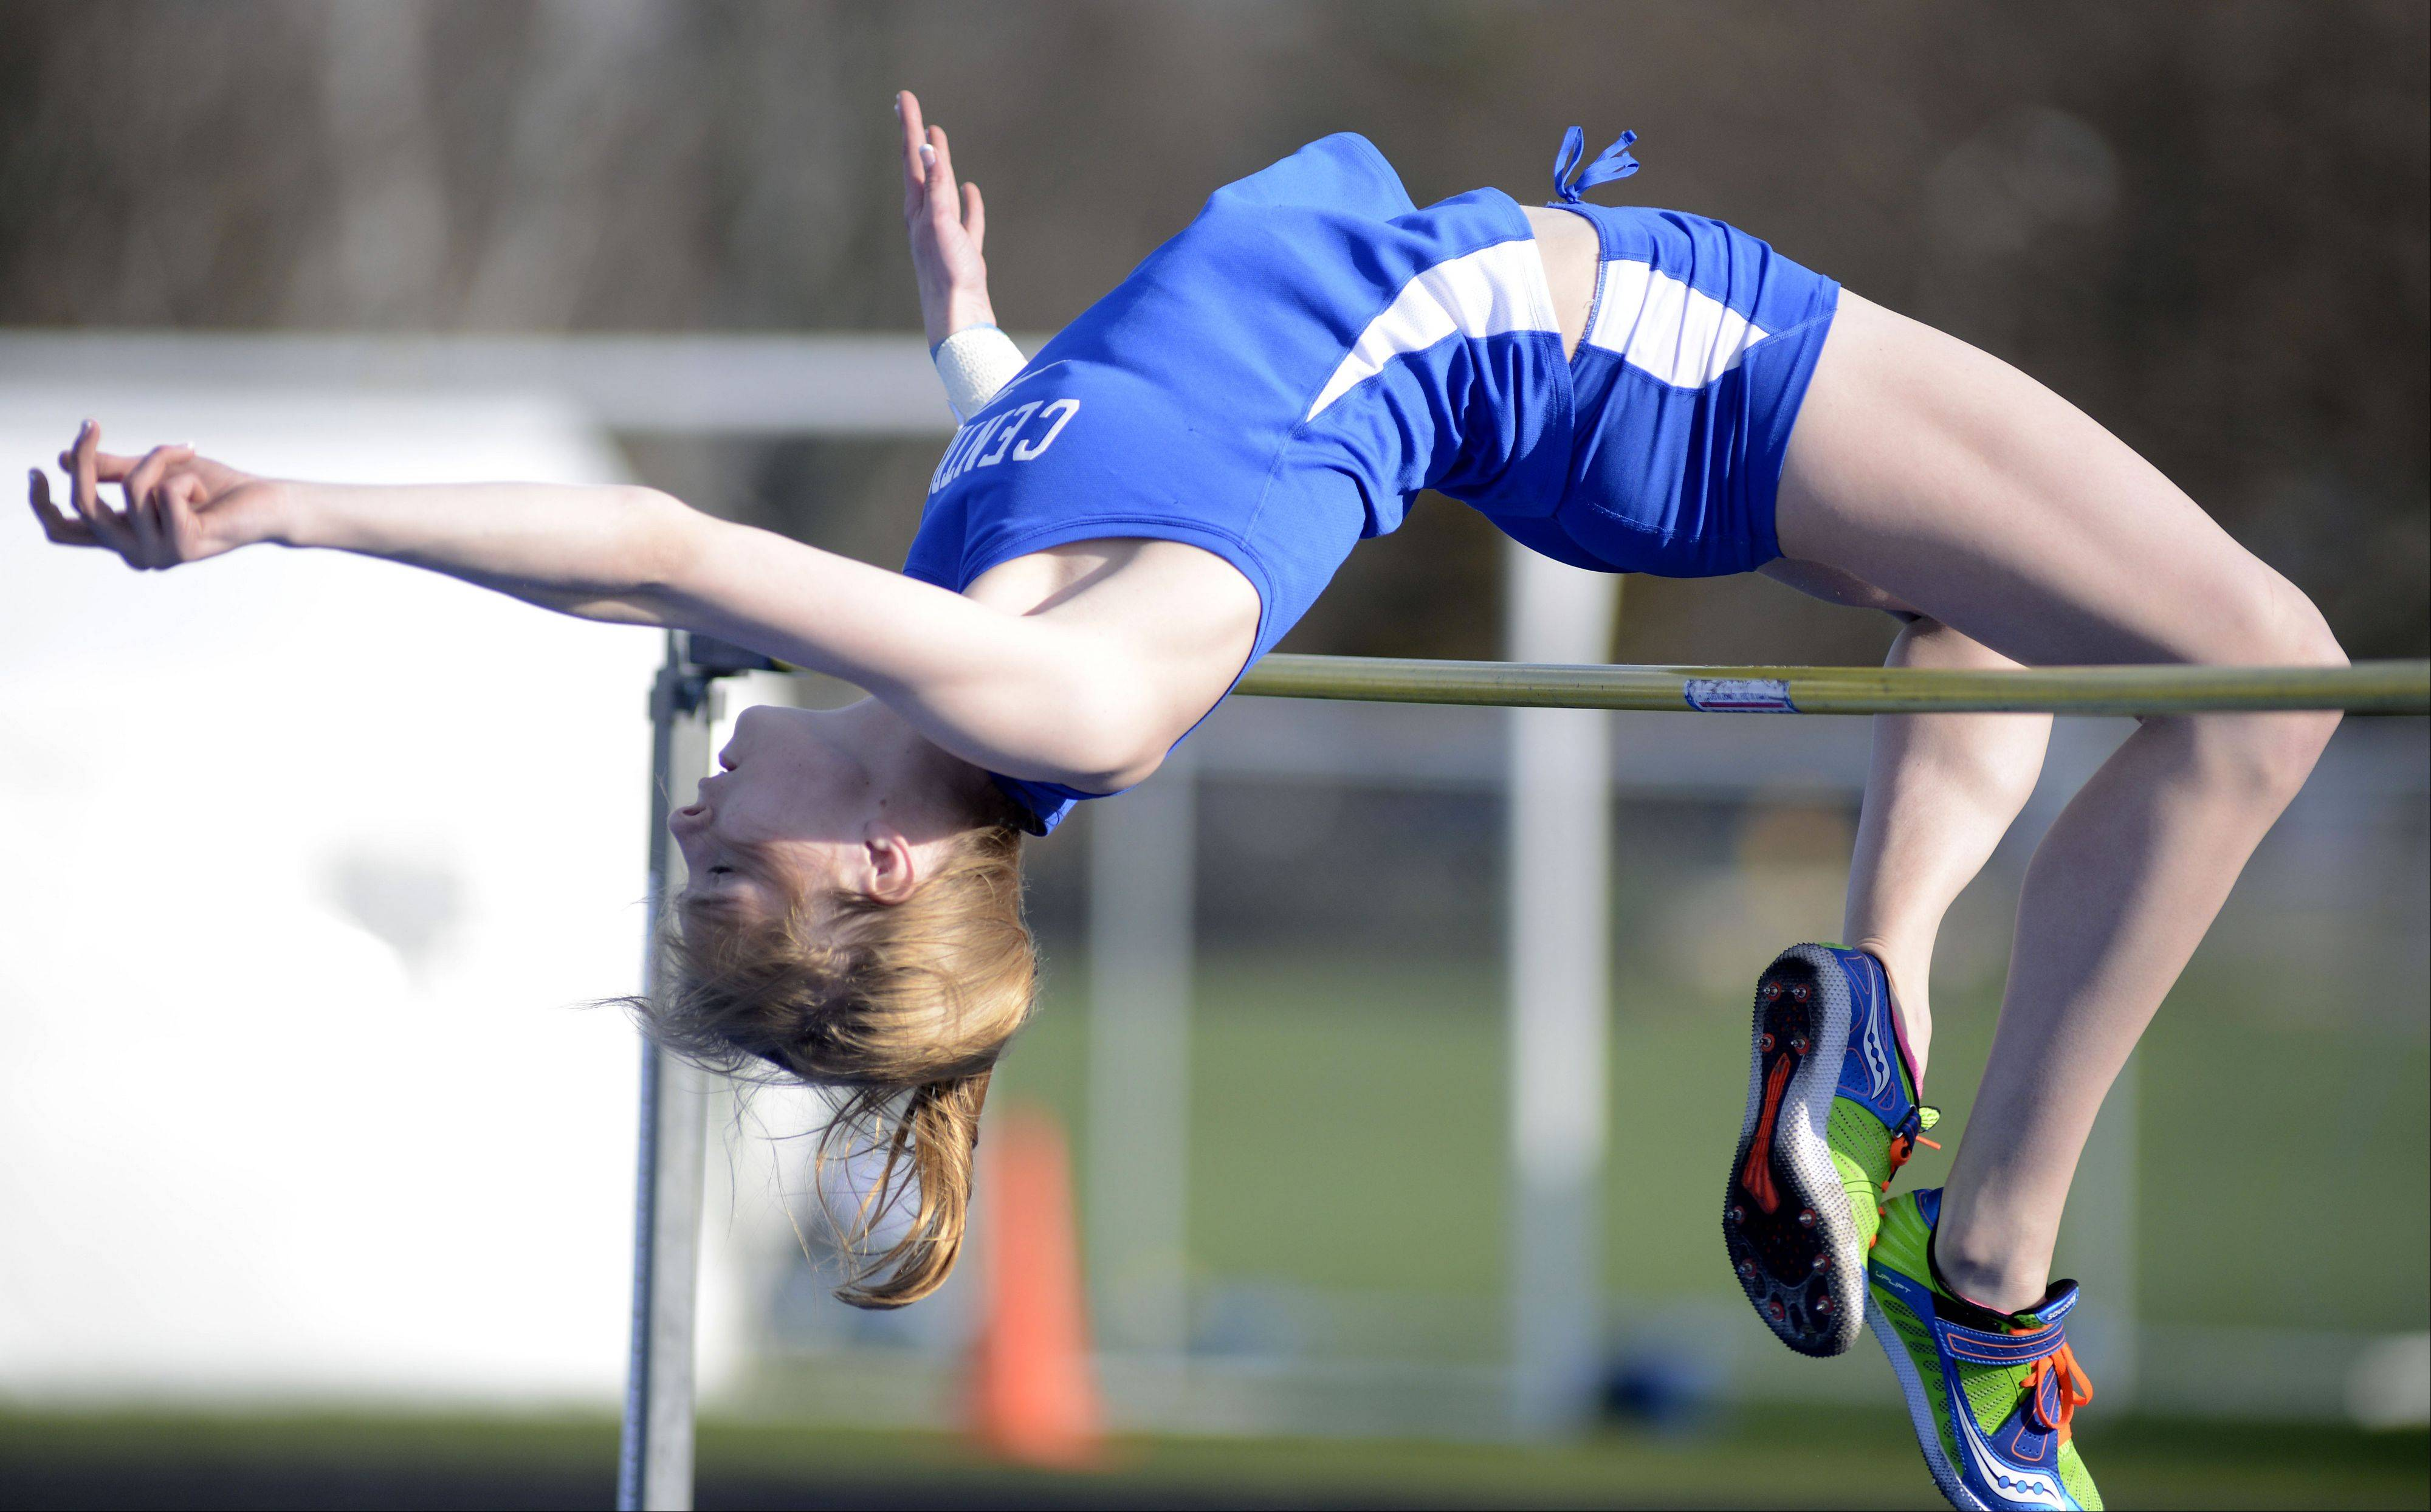 Burlington Central's Katie Trupp in the high jump at the Kane County Invitational track in Geneva meet on Friday, April 26.